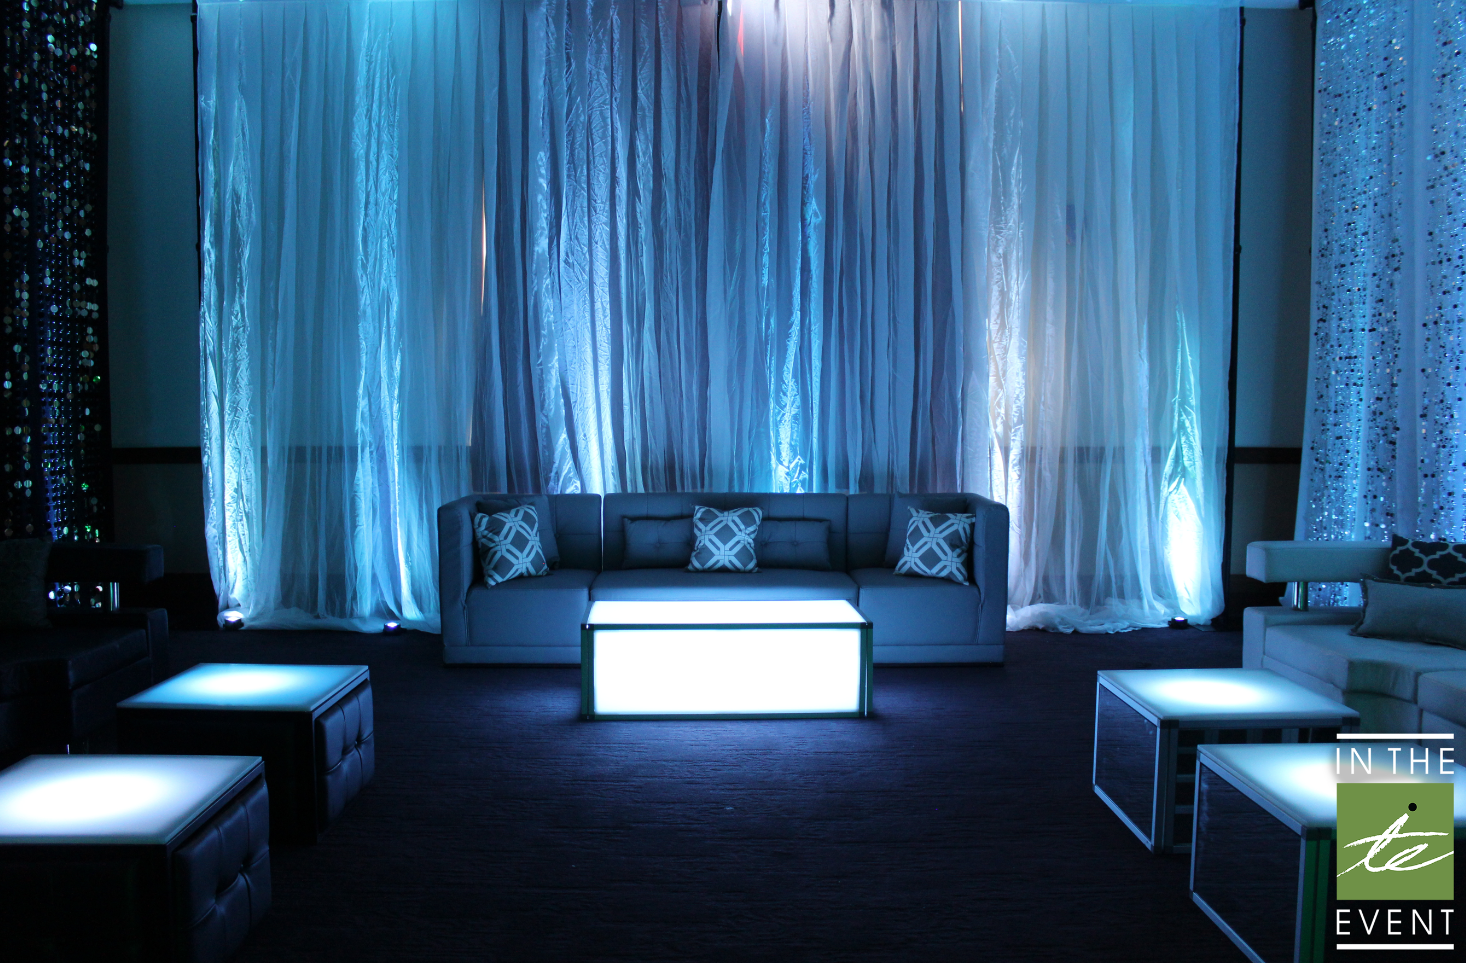 In The Event | Utah Event Venue